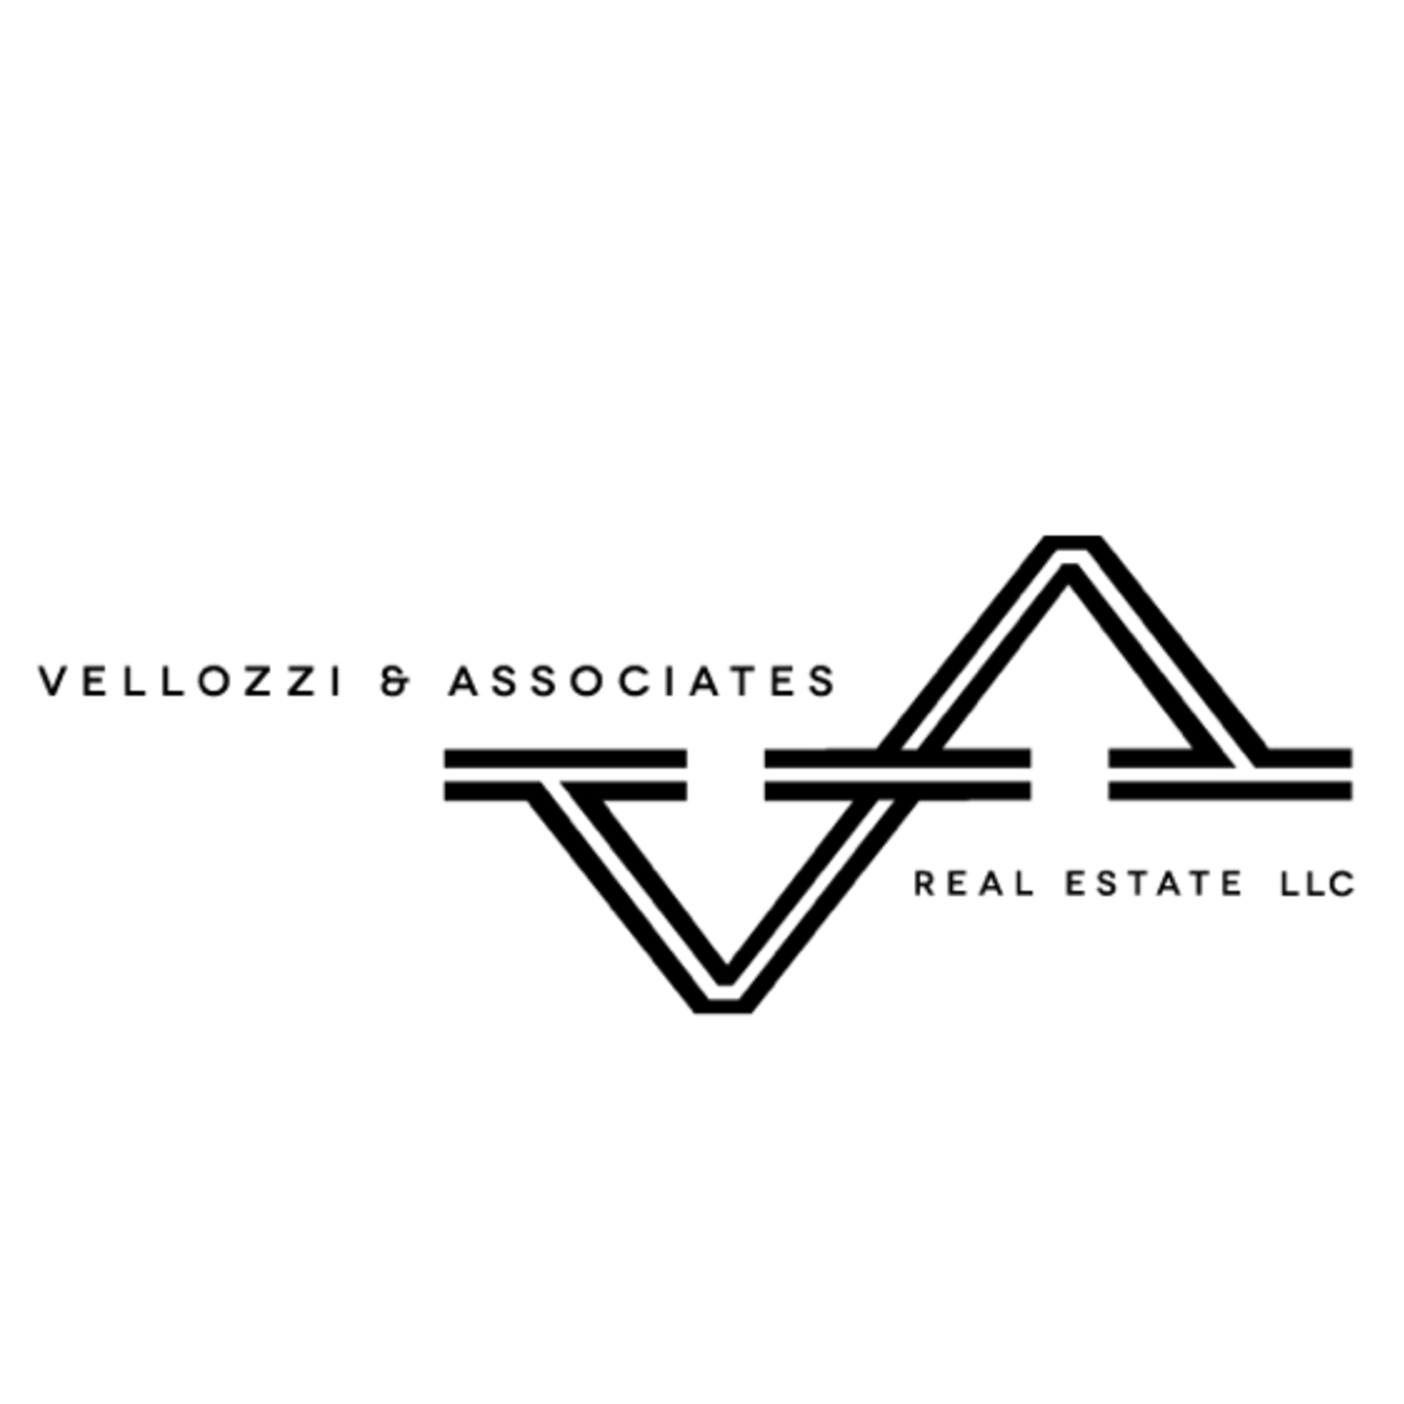 Vellozzi & Associates Real Estate LLC